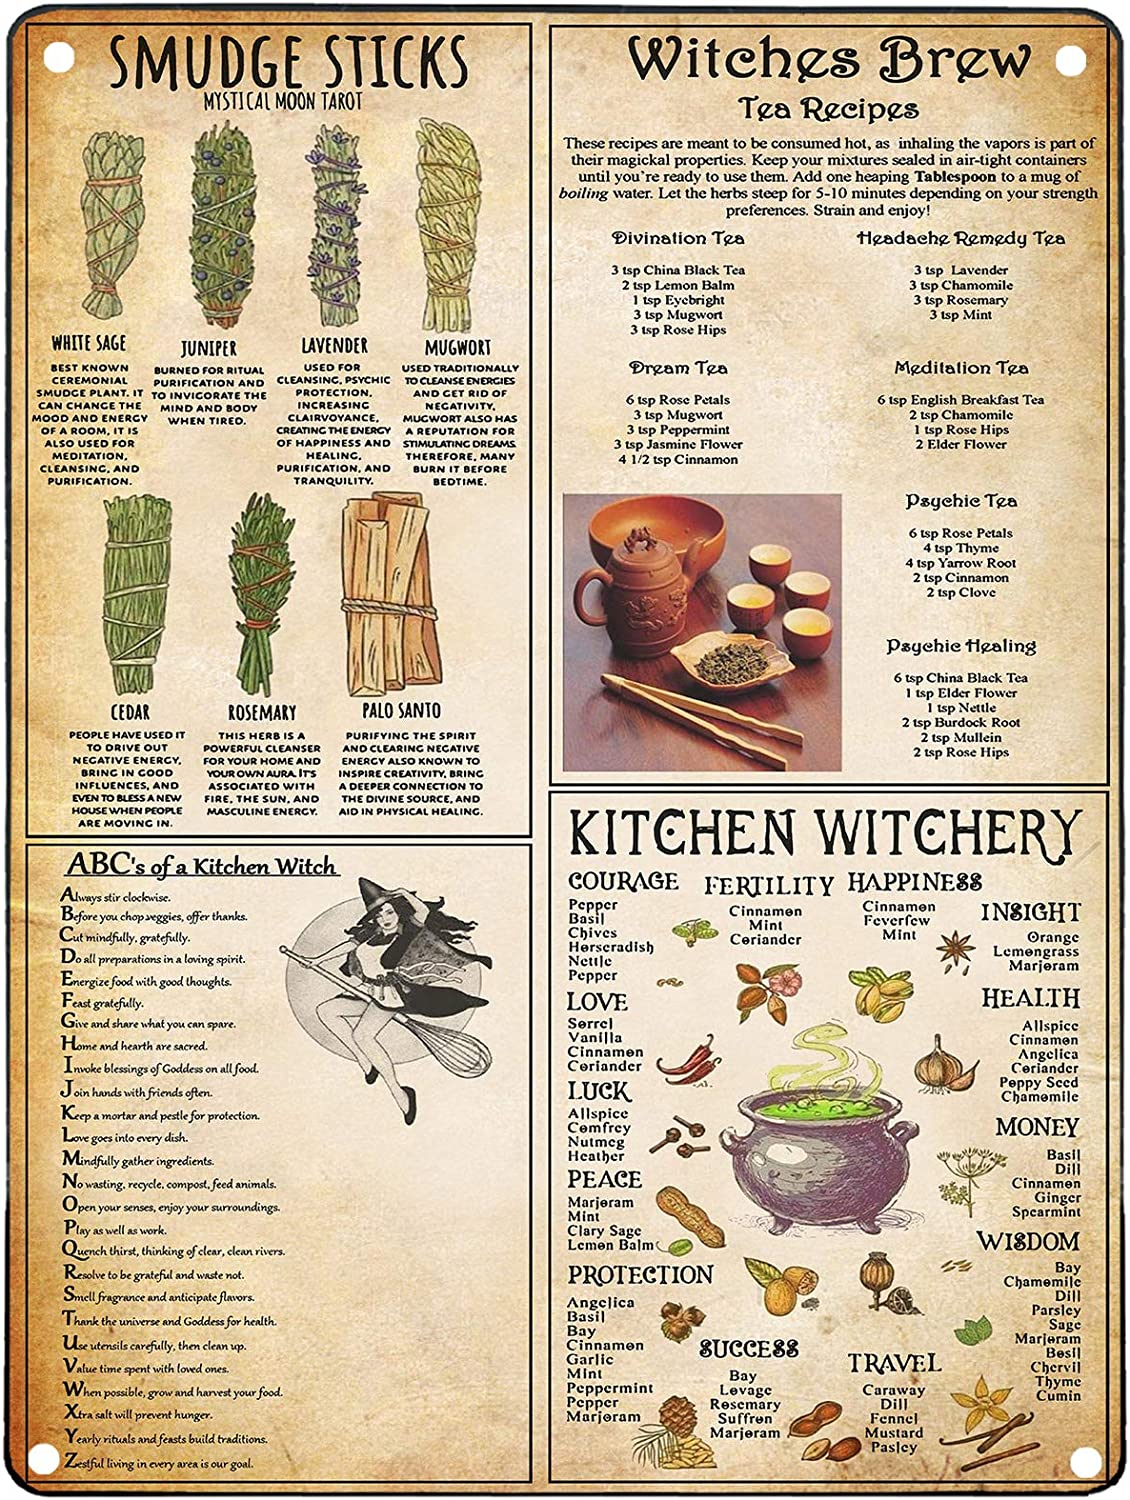 Personalized Sign Metal Kitchen Witchery Metal Sign, Witches Magic Knowledge,Kitchen Witch Wall Decor,Kitchen Witch Metal Sign,Magic Lover Gift,Wicca Home Decoration At Home Bar Decor